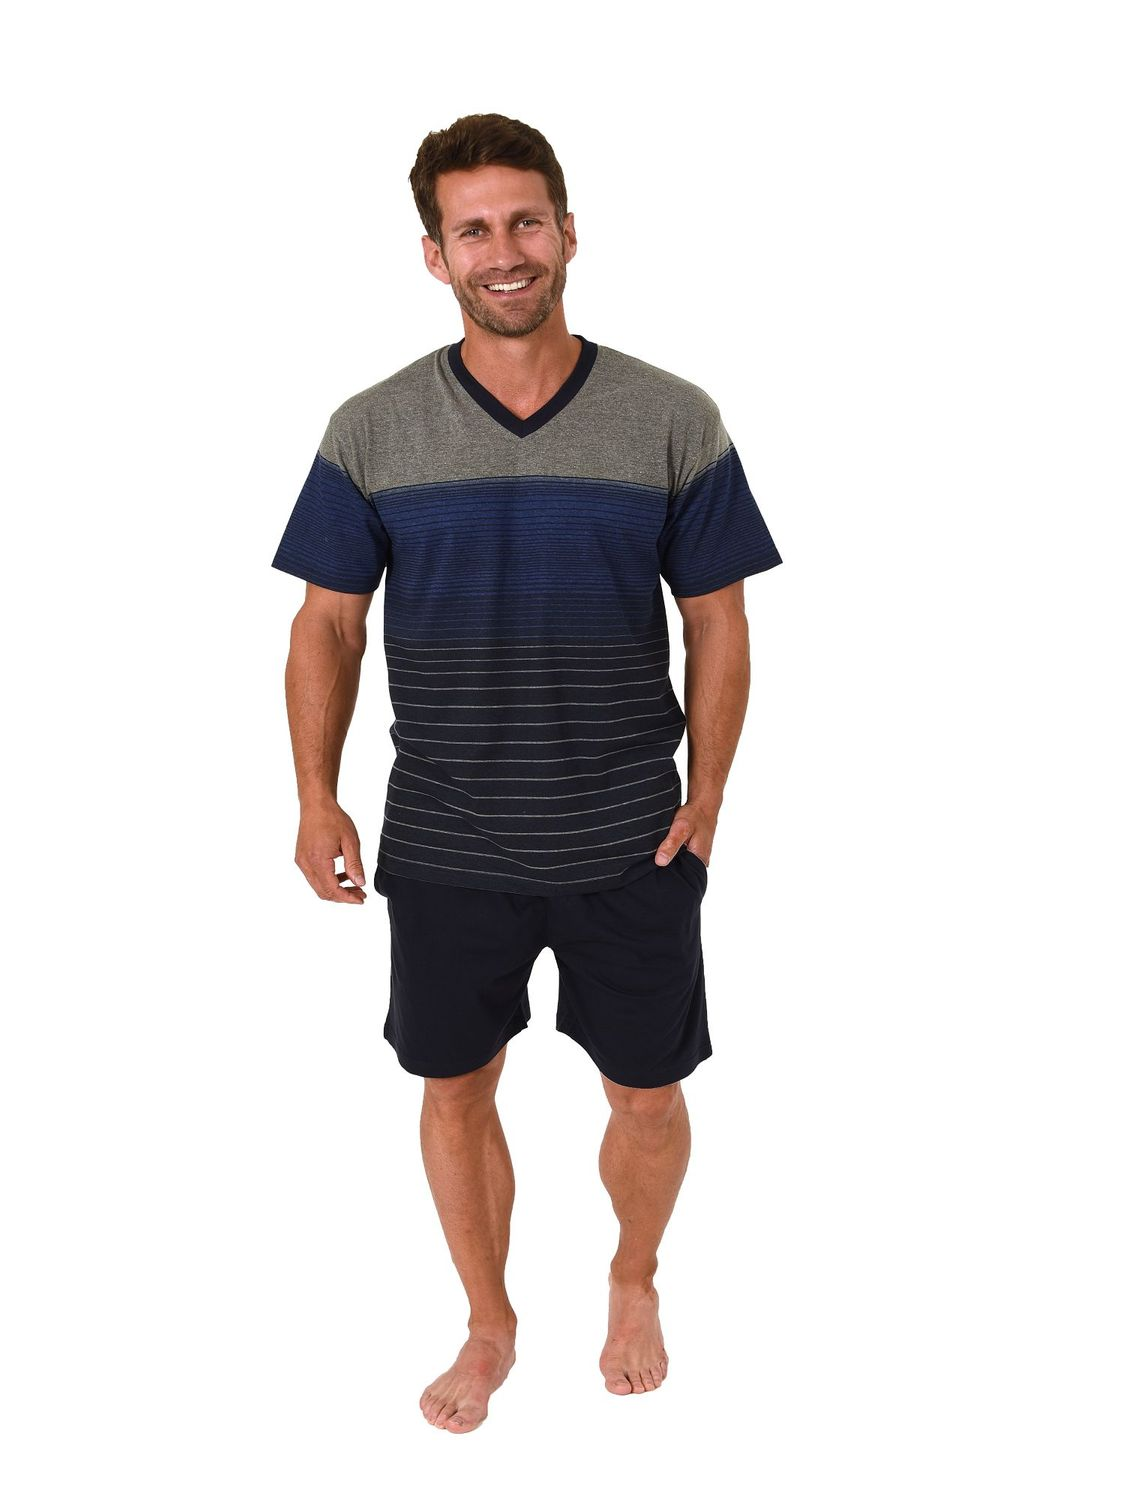 Eleganter Herren Shorty Pyjama Schlafanzug kurzarm in  Streifen Optik – 181 105 90 003